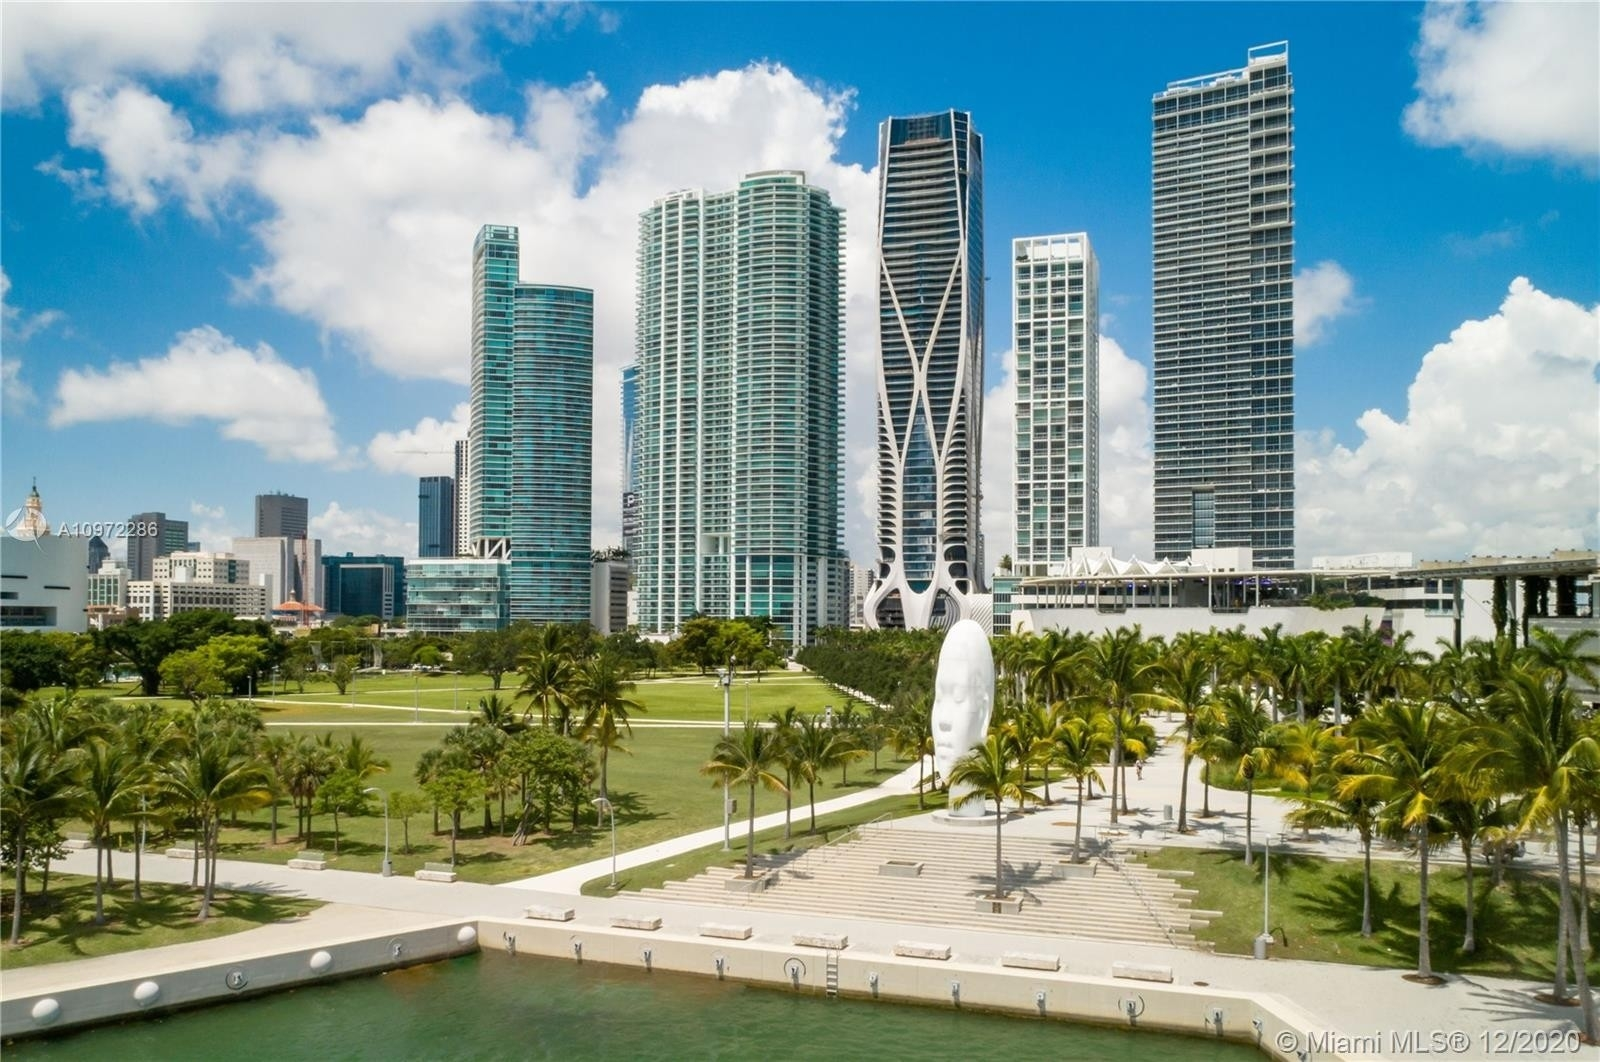 Property at 1100 Biscayne Blvd , 5002 Park West, Miami, FL 33132